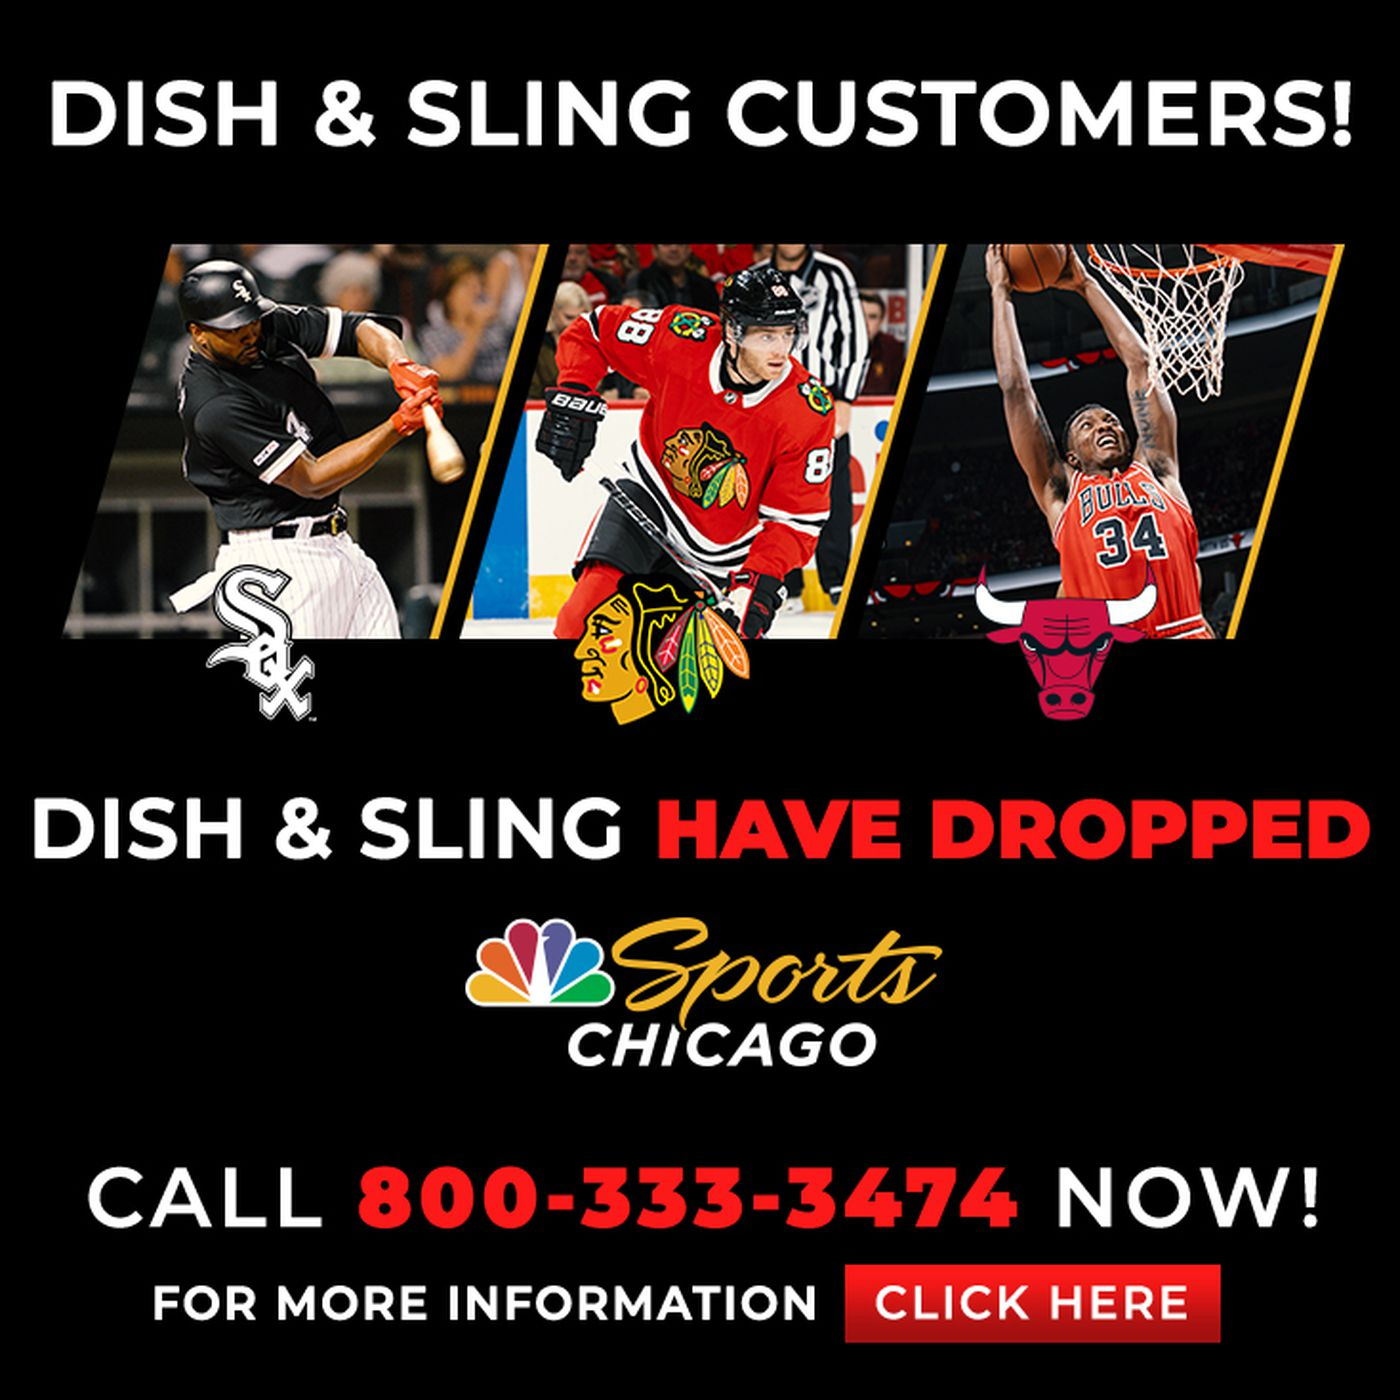 Nbc Sports Chicago Is Unlikely To Appear On Dish Network Anytime Soon Chicago Sun Times